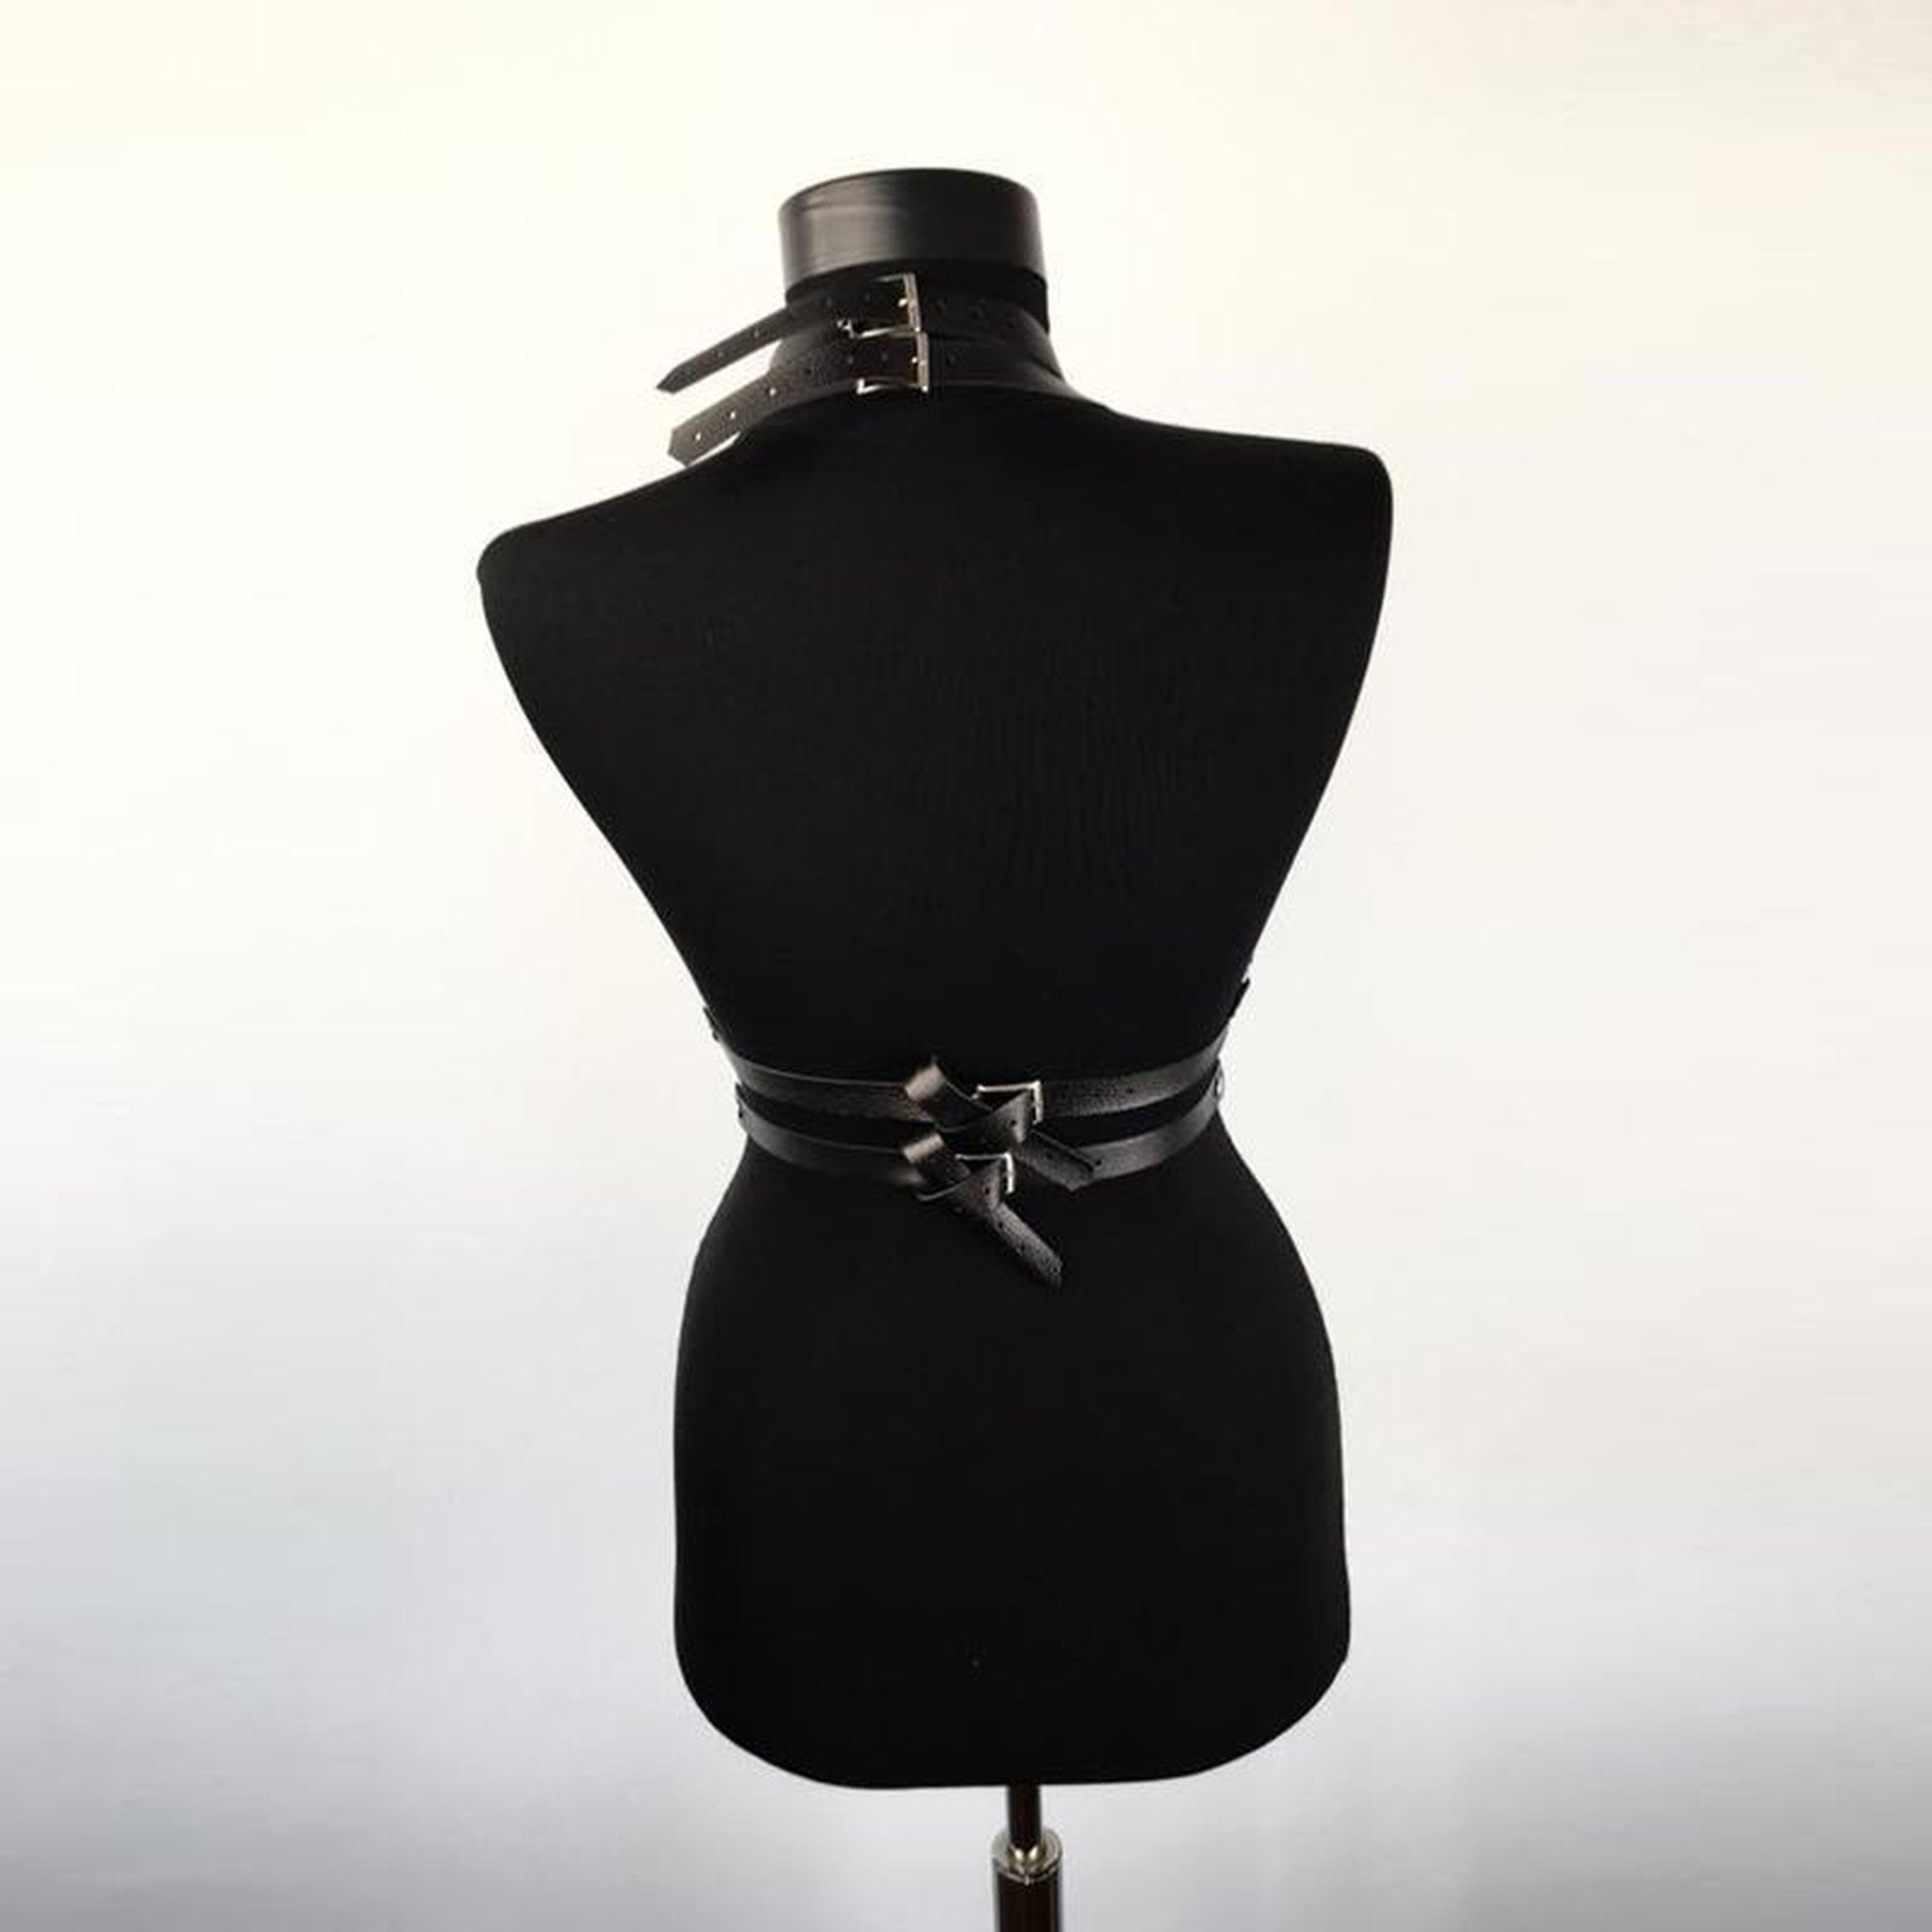 Punk Leather Harness-Good Girl xox-One Size-buy-bdsm-bondage-gear-tools-toys-online-good-girl-xox